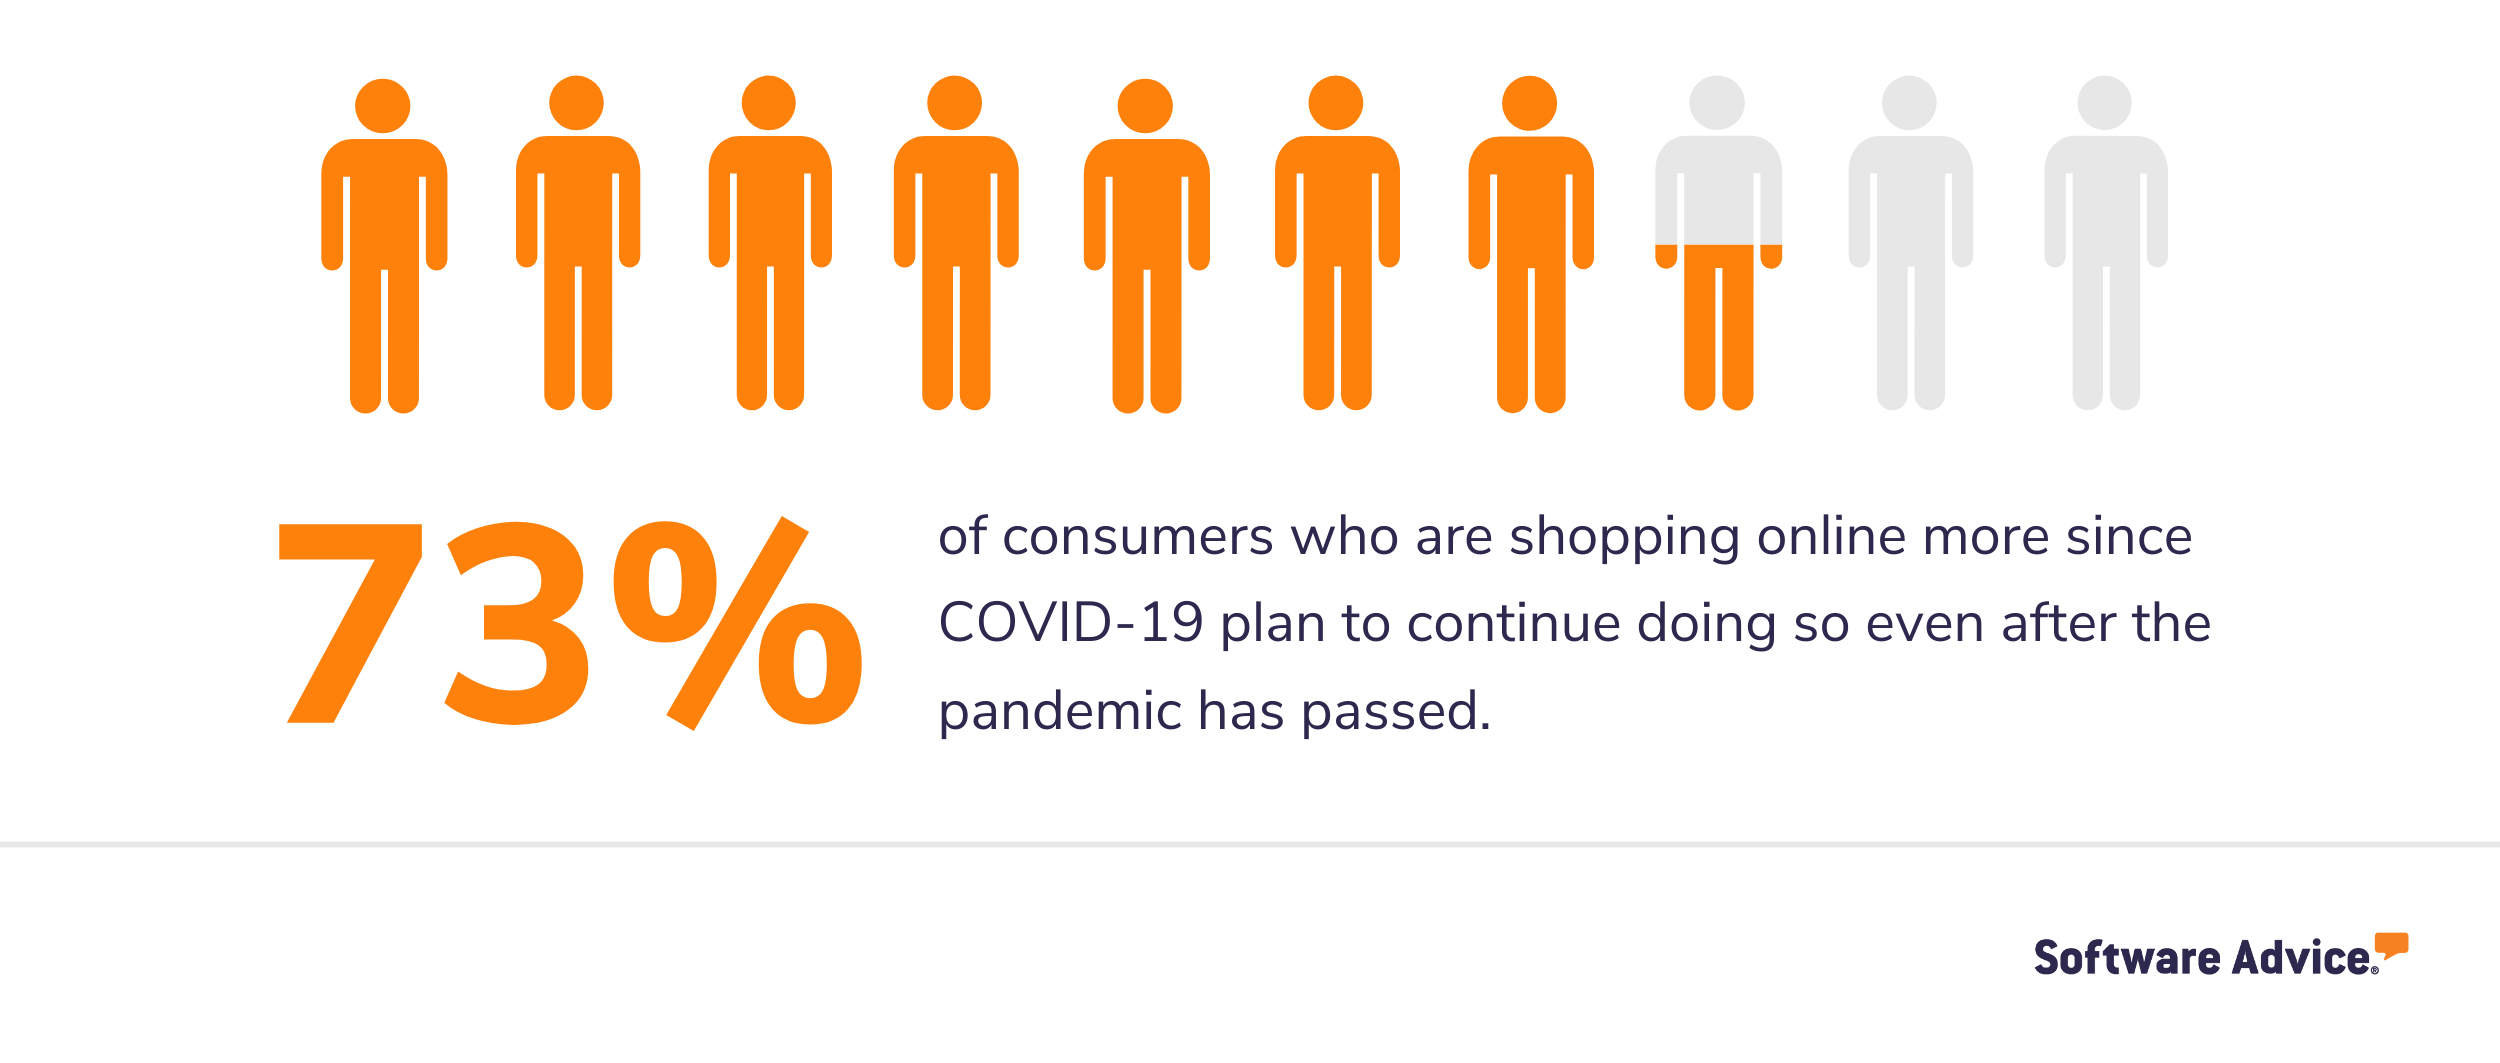 A chart showing that 73% of consumers who are shopping online more since COVID-19 plan to continue doing so even after the pandemic has passed.